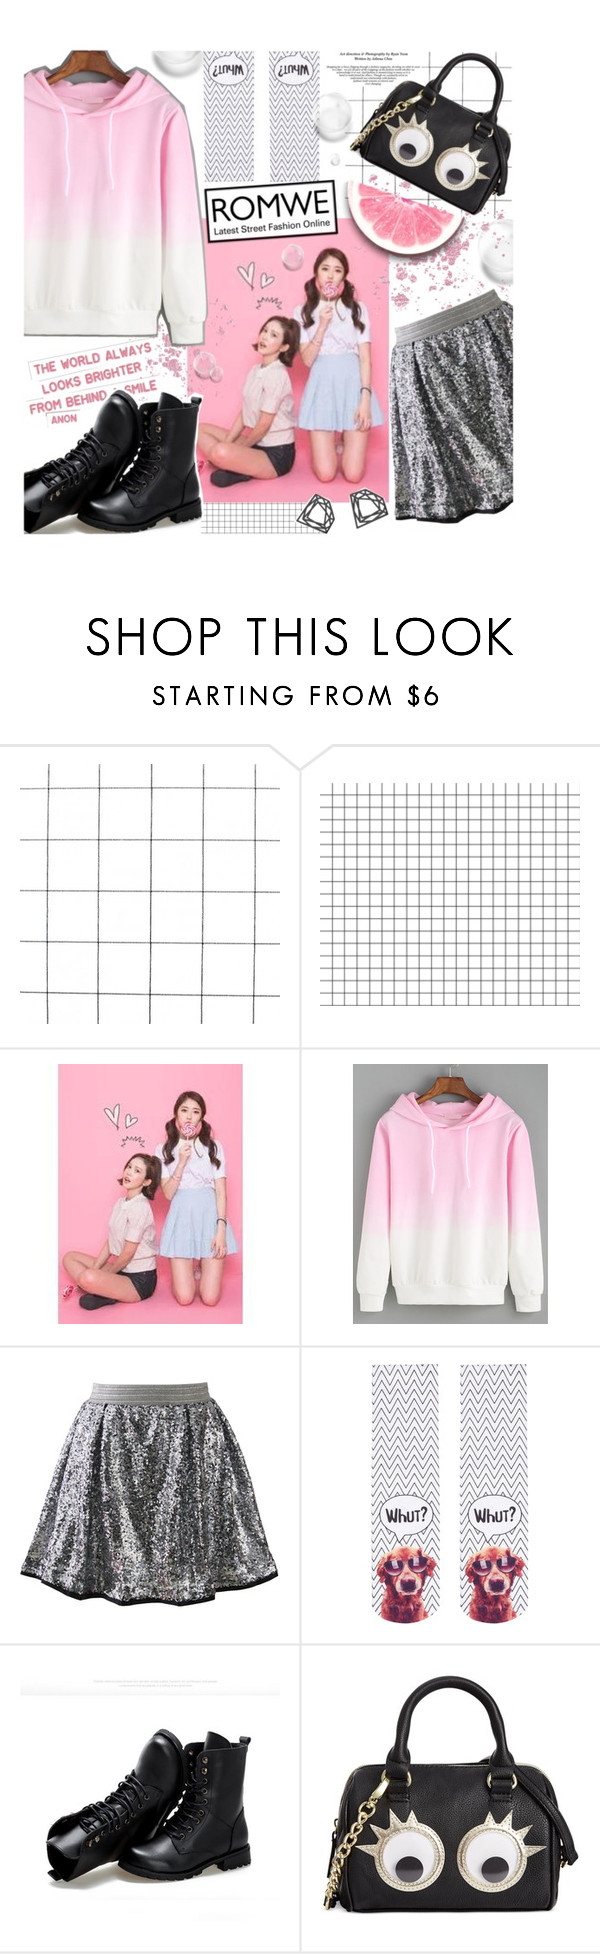 """Romwe Pink Sweatshirt"" by parkersam76 ❤ liked on Polyvore featuring Chicwish, Topshop, Sunsteps, Betsey Johnson, Myia Bonner, romwe, BetseyJohnson, polyvoreeditorial and yesstyle"